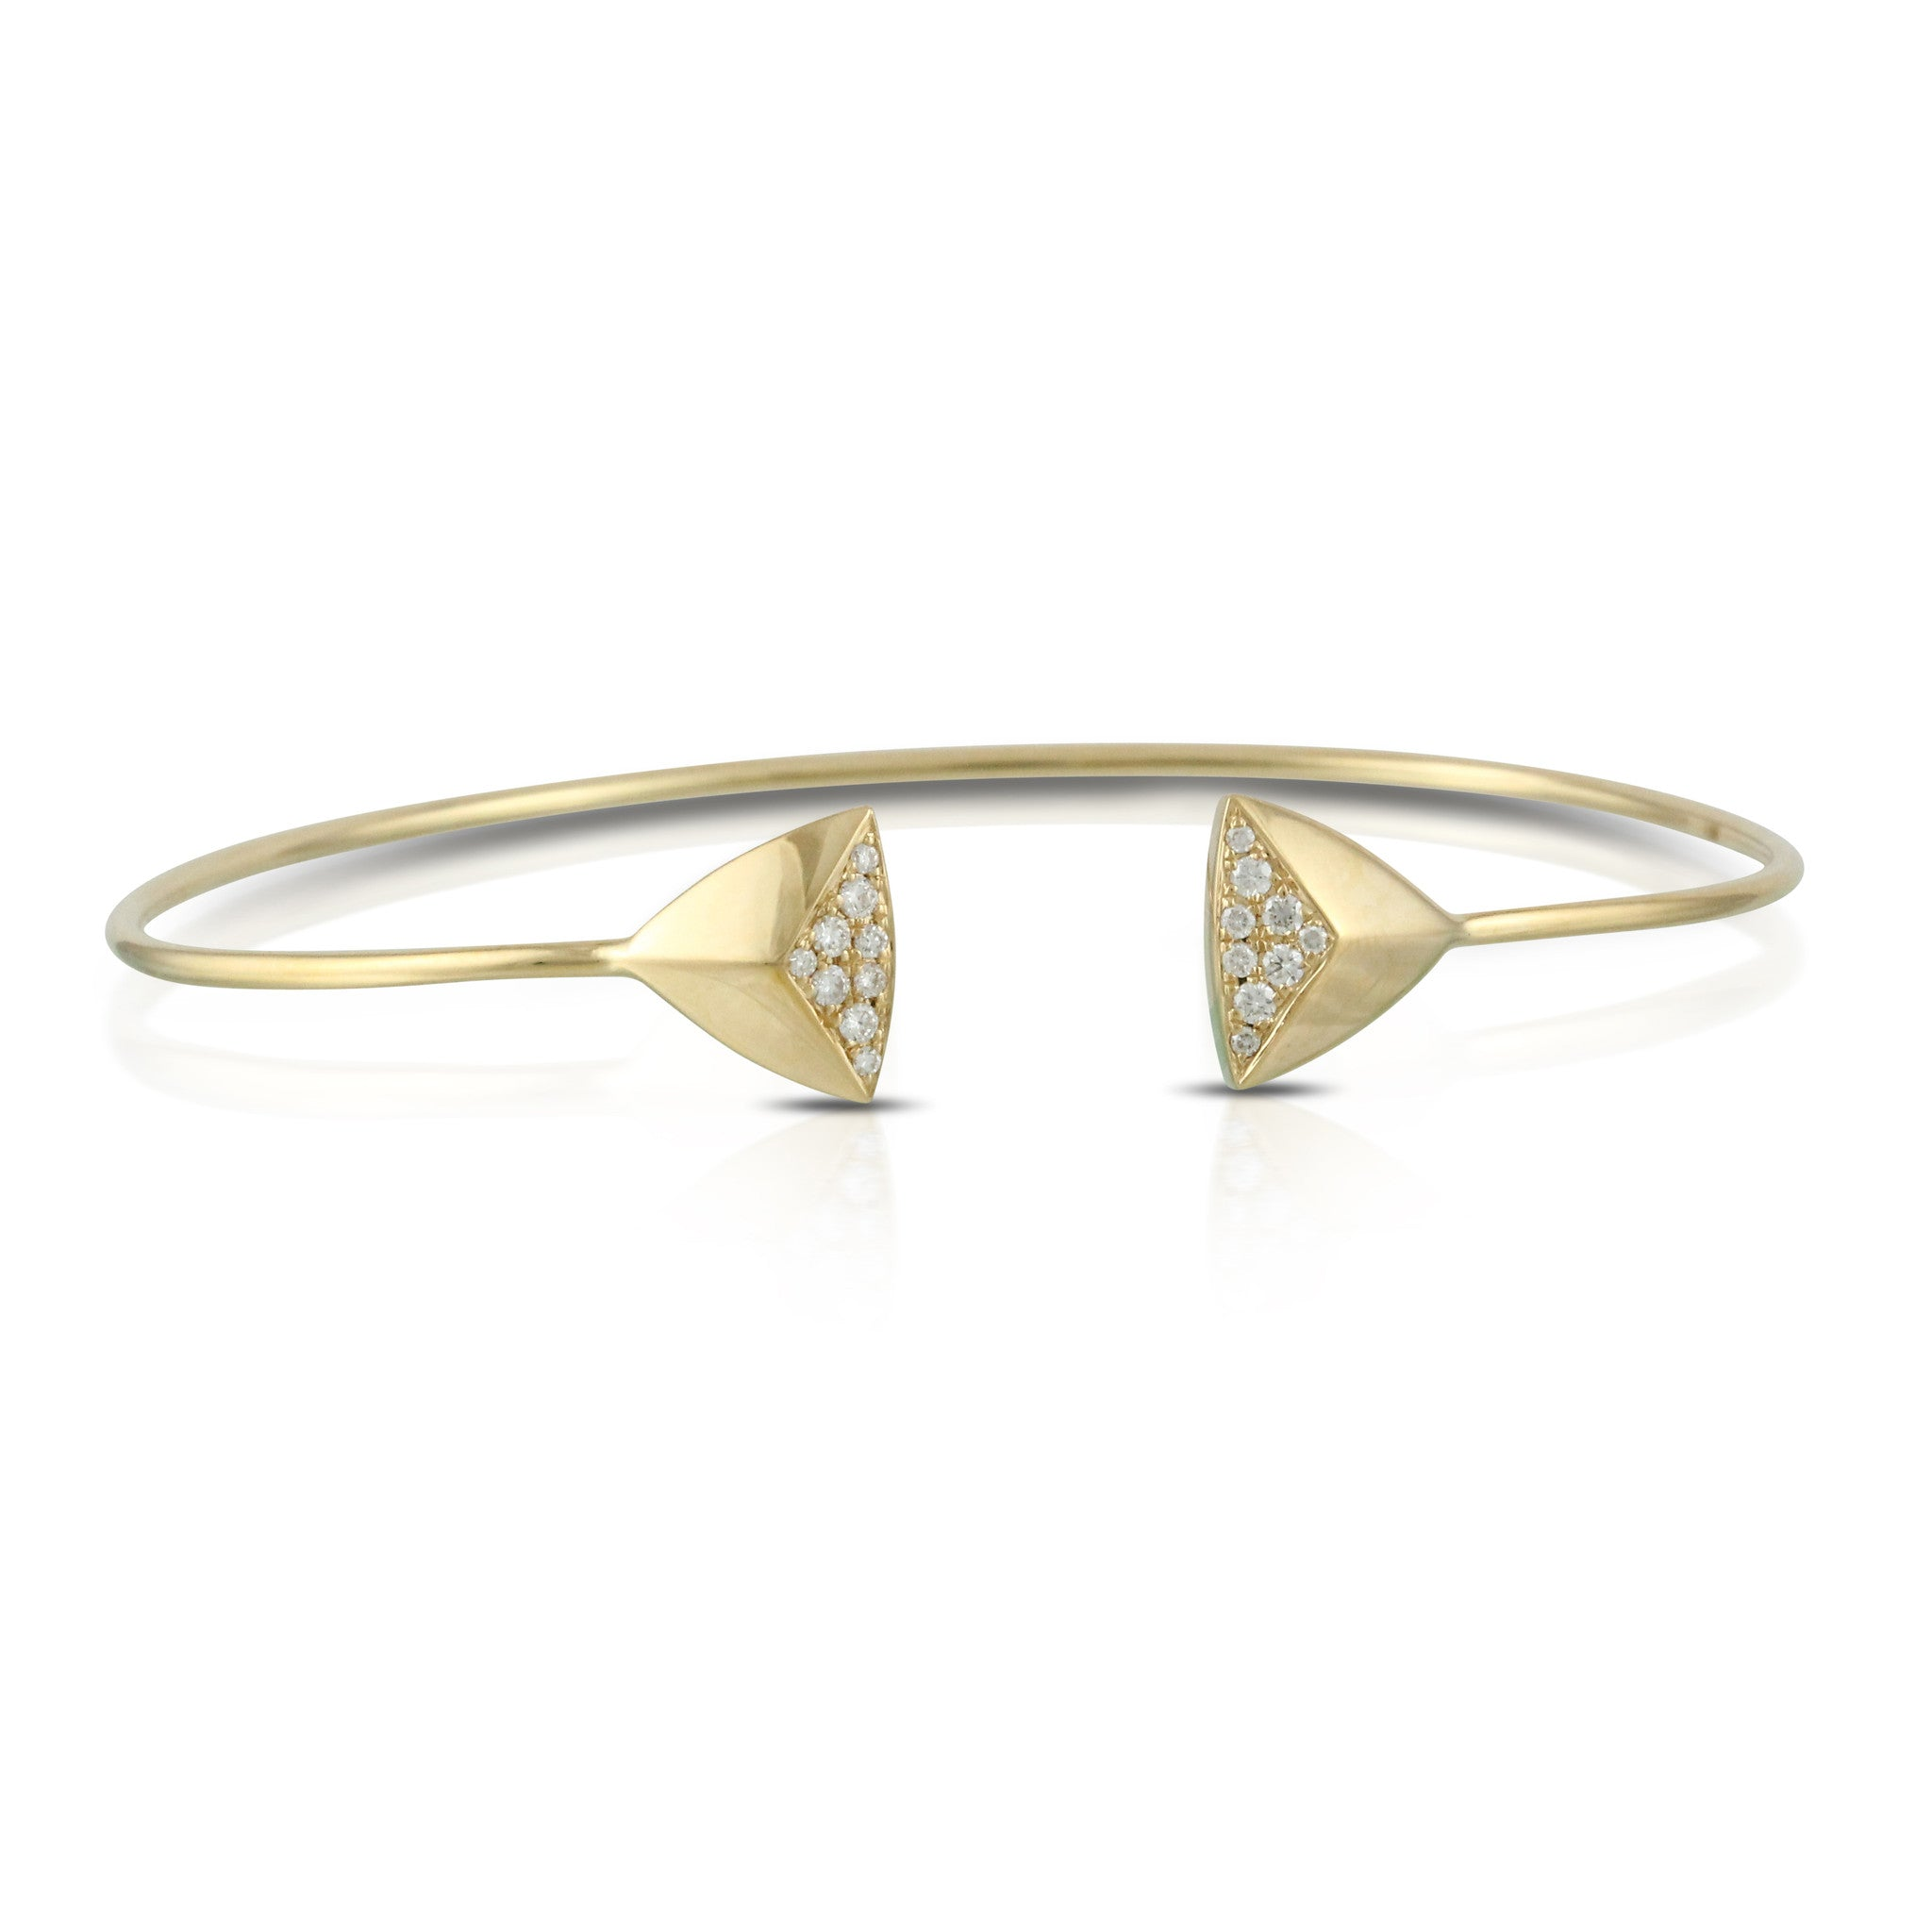 Doves Ladies' Art Deco 18k Yellow Gold Diamond Bangle by Jewelry Designer Doron Paloma